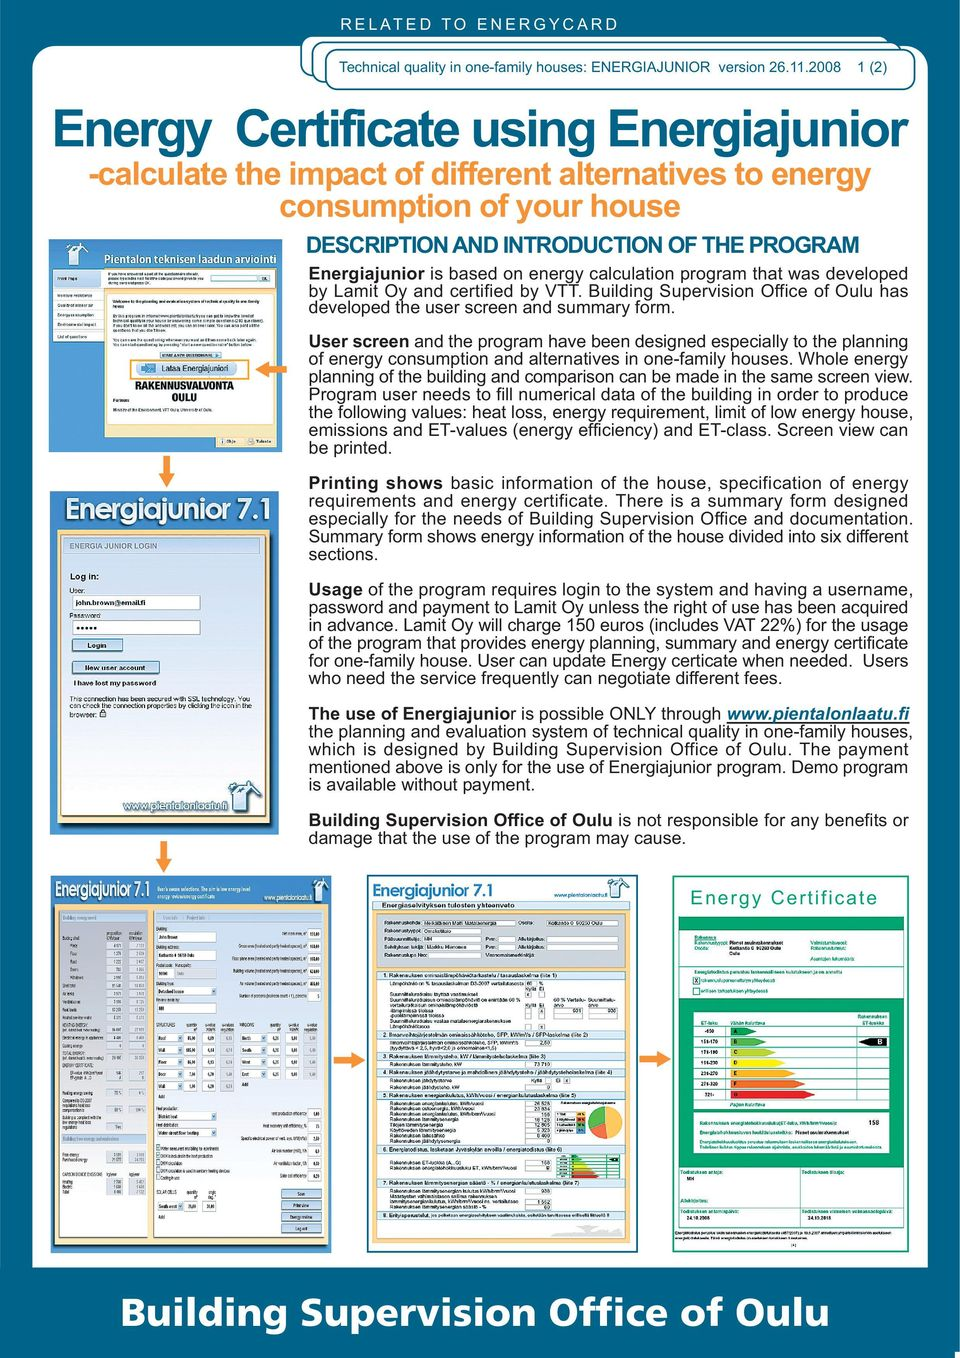 based on energy calculation program that was developed by Lamit Oy and certified by VTT. Building Supervision Office of Oulu has developed the user screen and summary form.